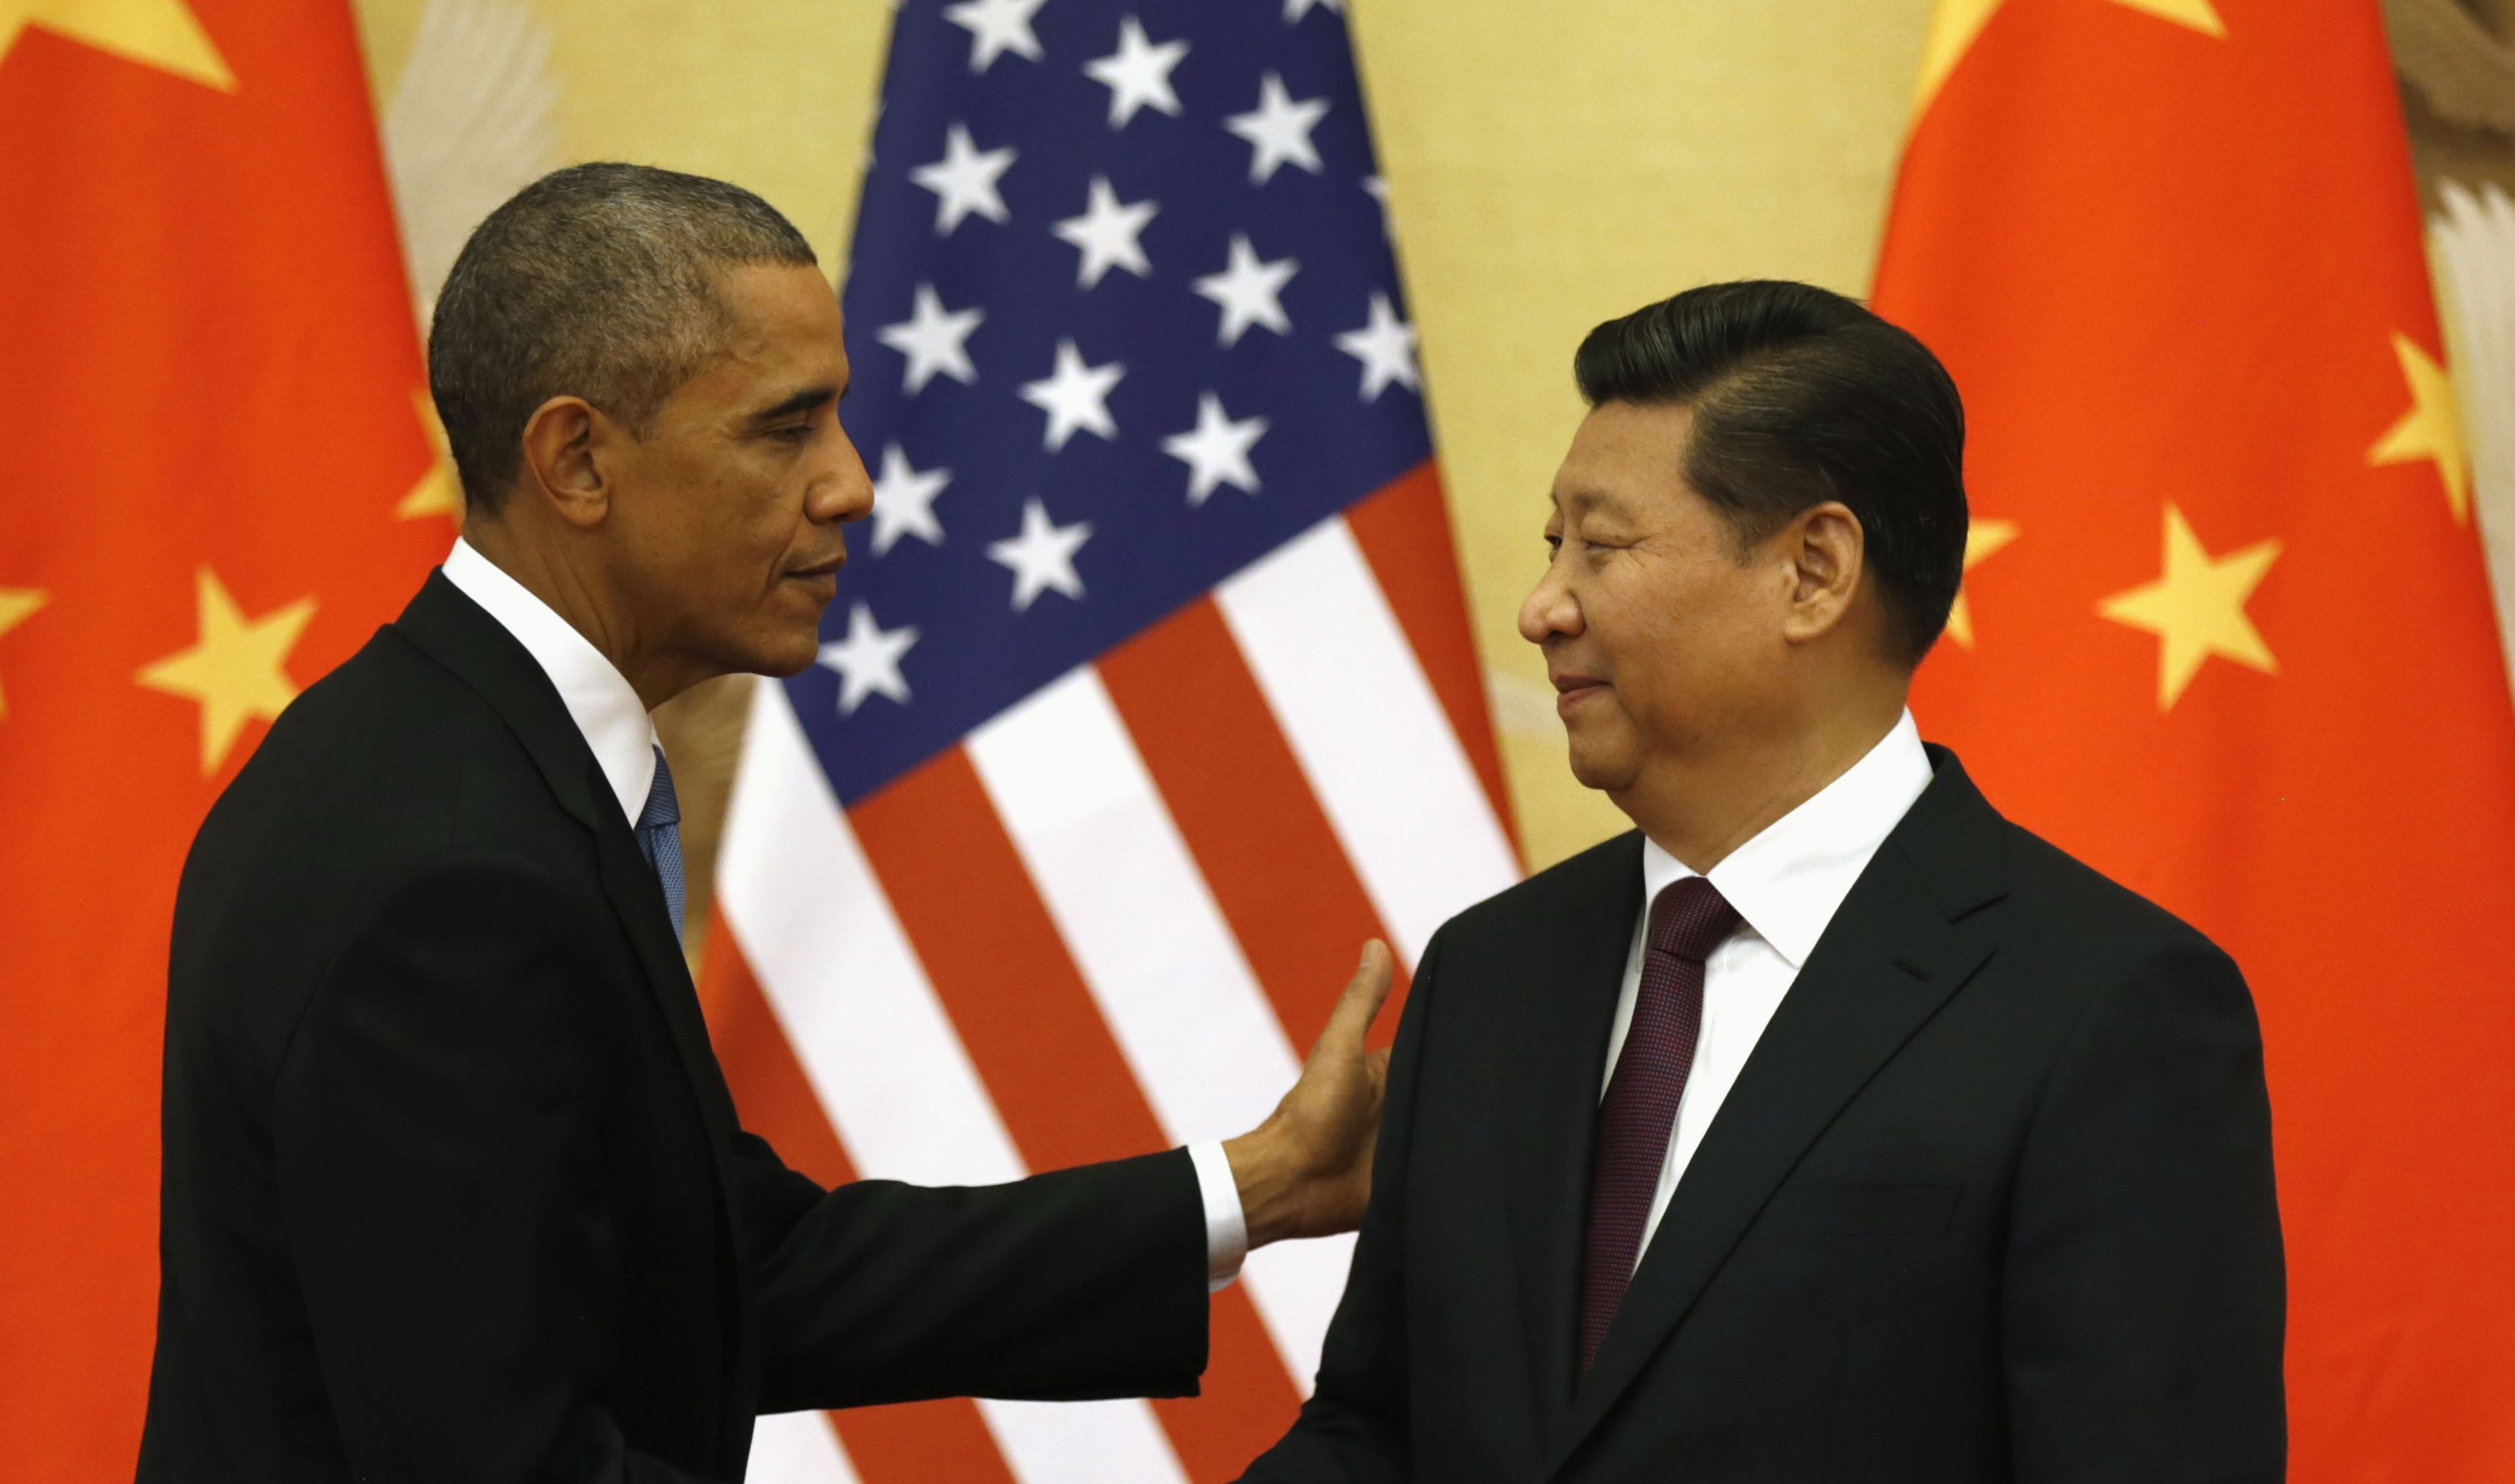 U.S. President Barack Obama pats Chinese President Xi Jinping on the shoulder at the end of their news conference in the Great Hall of the People in Beijing on Nov. 12, 2014